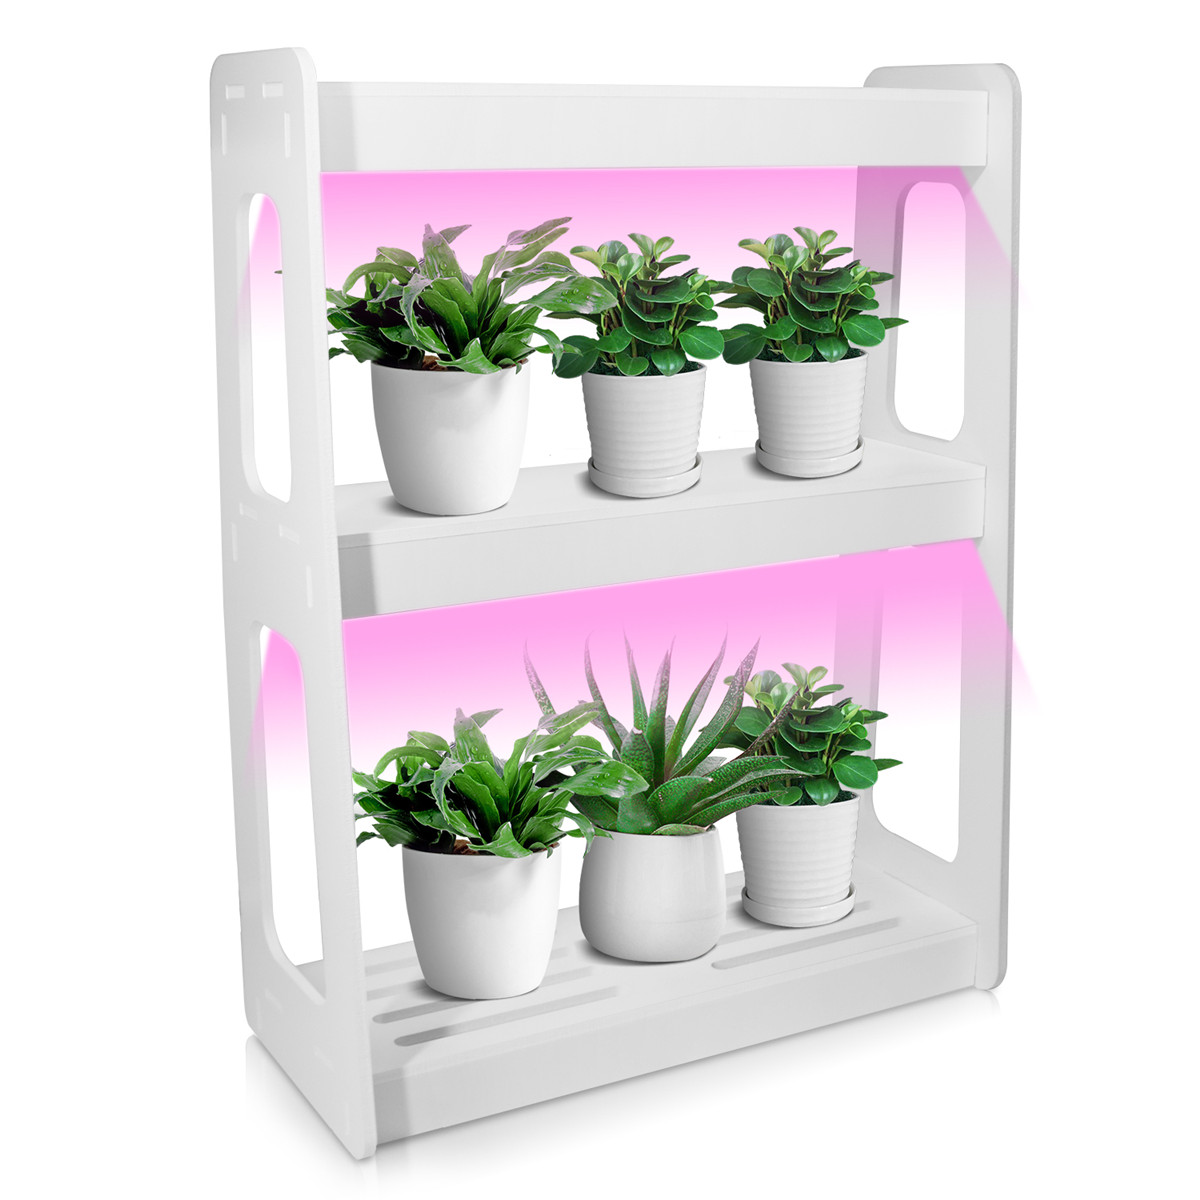 20W LED Full Spectrum High Efficiency Grow Lighting System Flowerpot Plant Shelf With Plant Lights Indoor Flower Rack US/EU